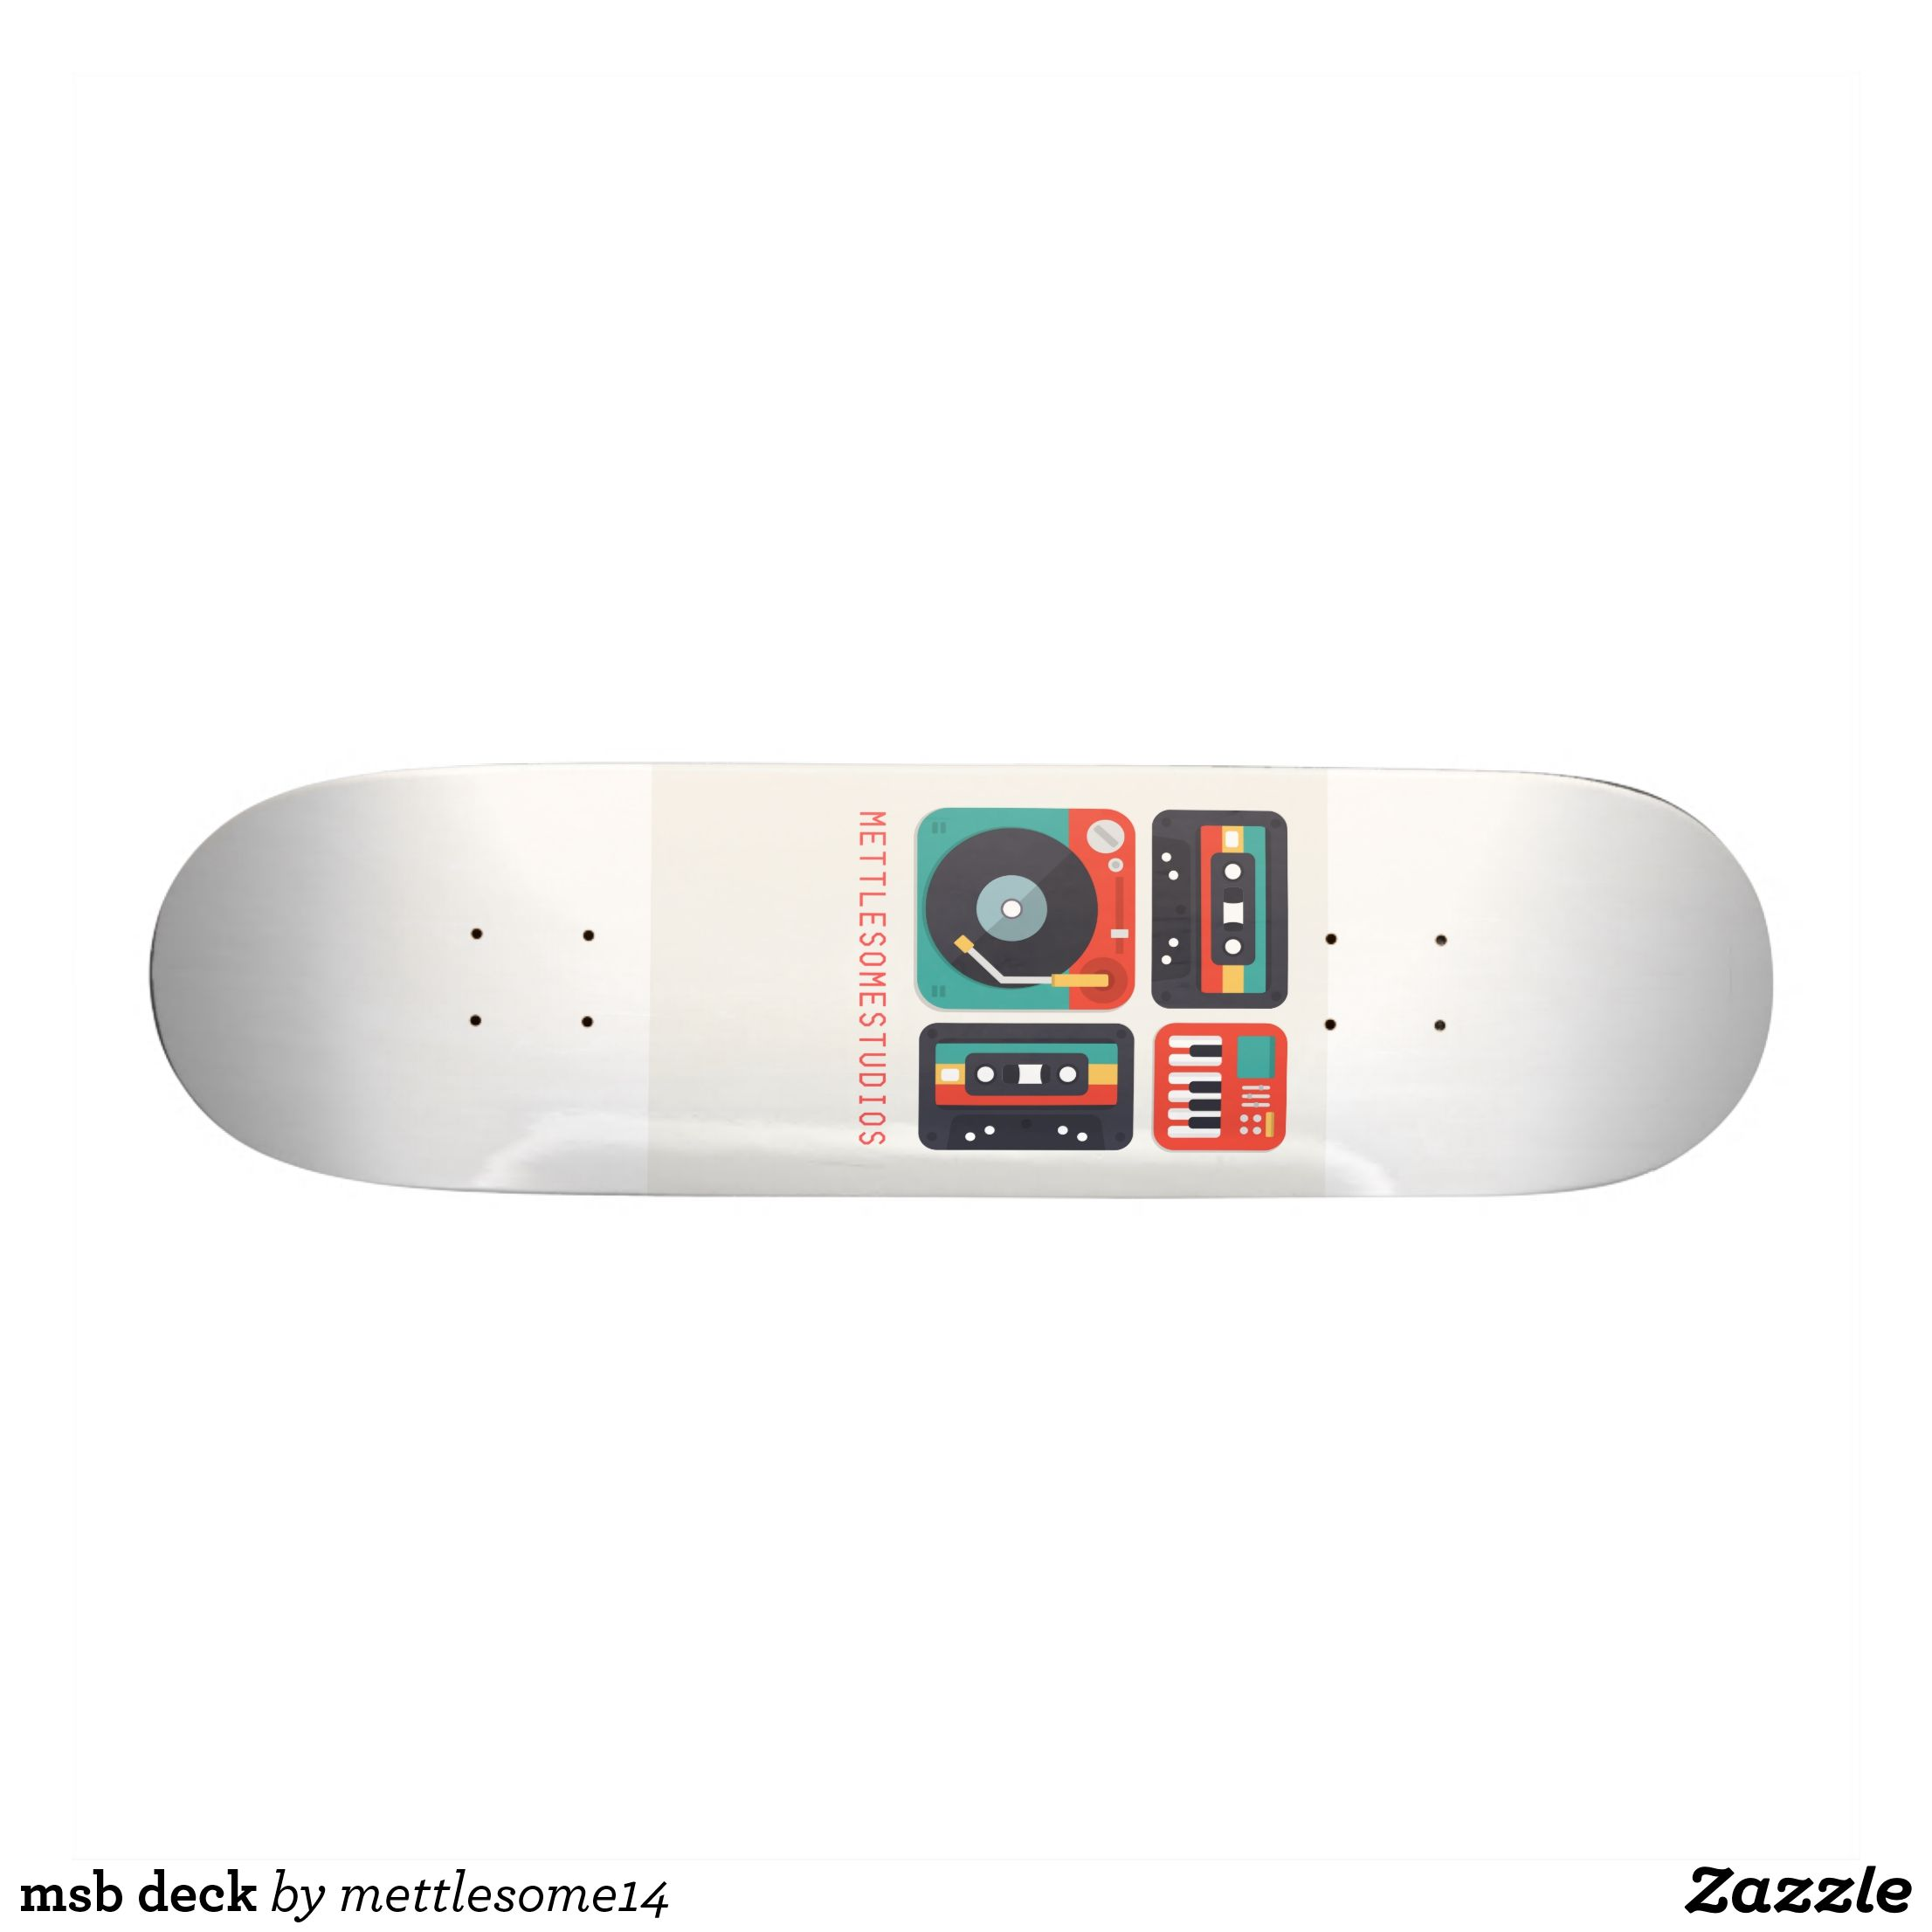 0e97e16bf5e msb deck - Supreme Hard-Rock Maple Deck Custom Boards By Talented Fashion &  Graphic Designers - #skating #skater #skateboarding #shopping #bargain  #sale ...